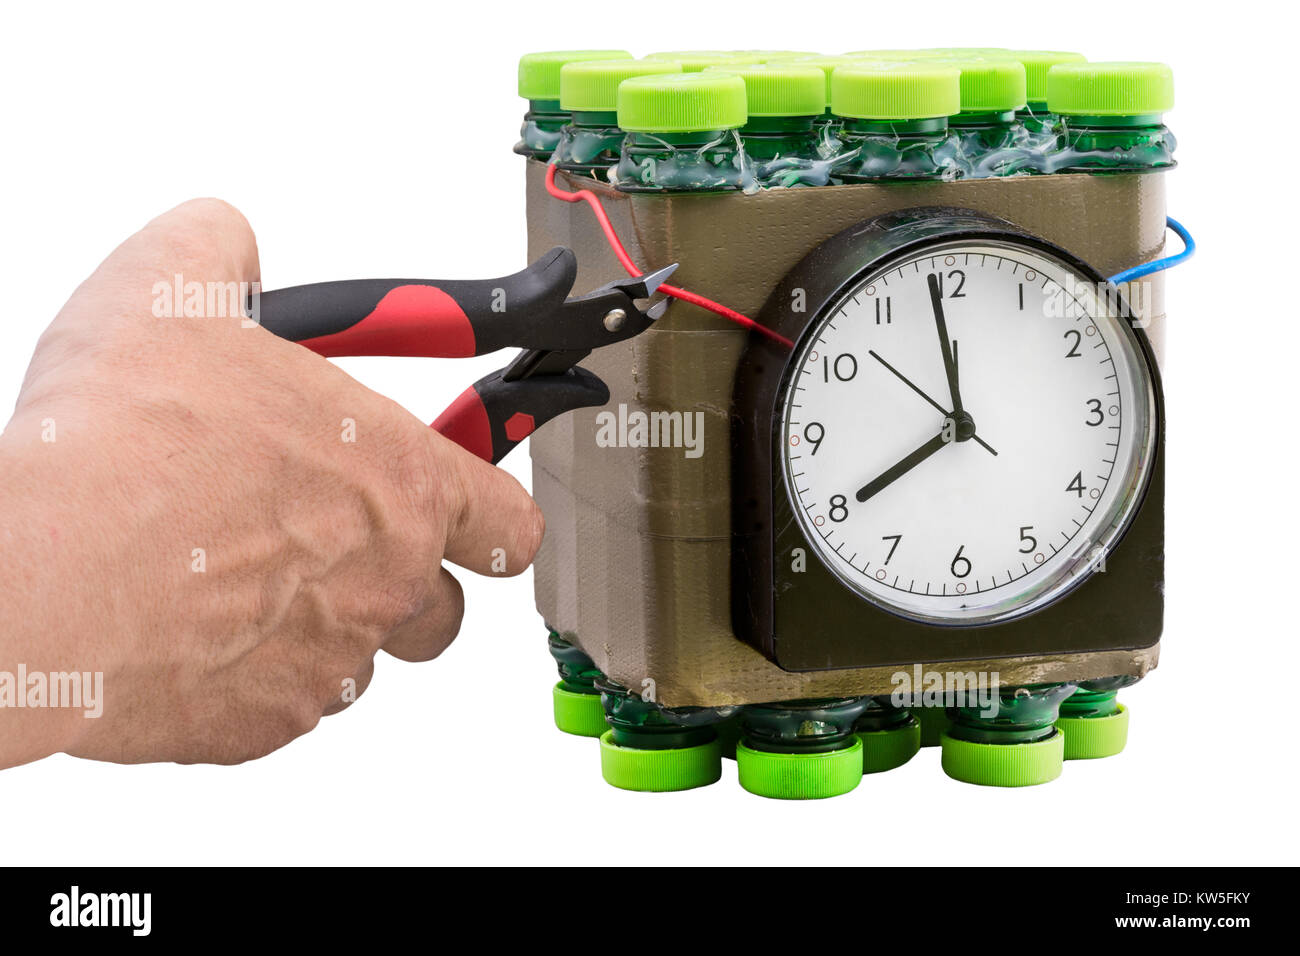 Deactivation of timed bomb. Detail of the hand during disposal of dangerous timebomb on white background. Isolated. - Stock Image